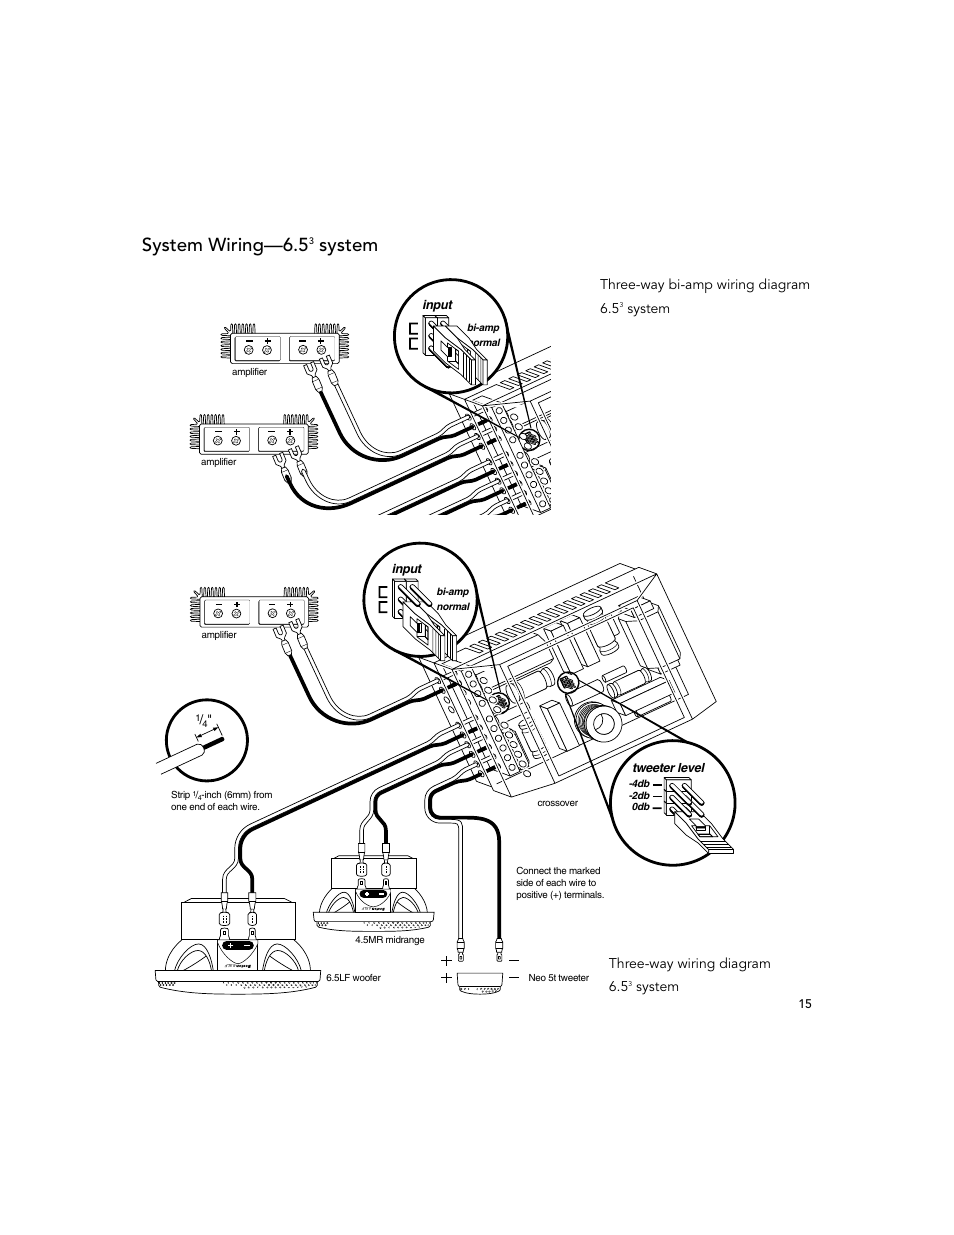 System wiring—6.5, Three-way wiring diagram 6.5, System